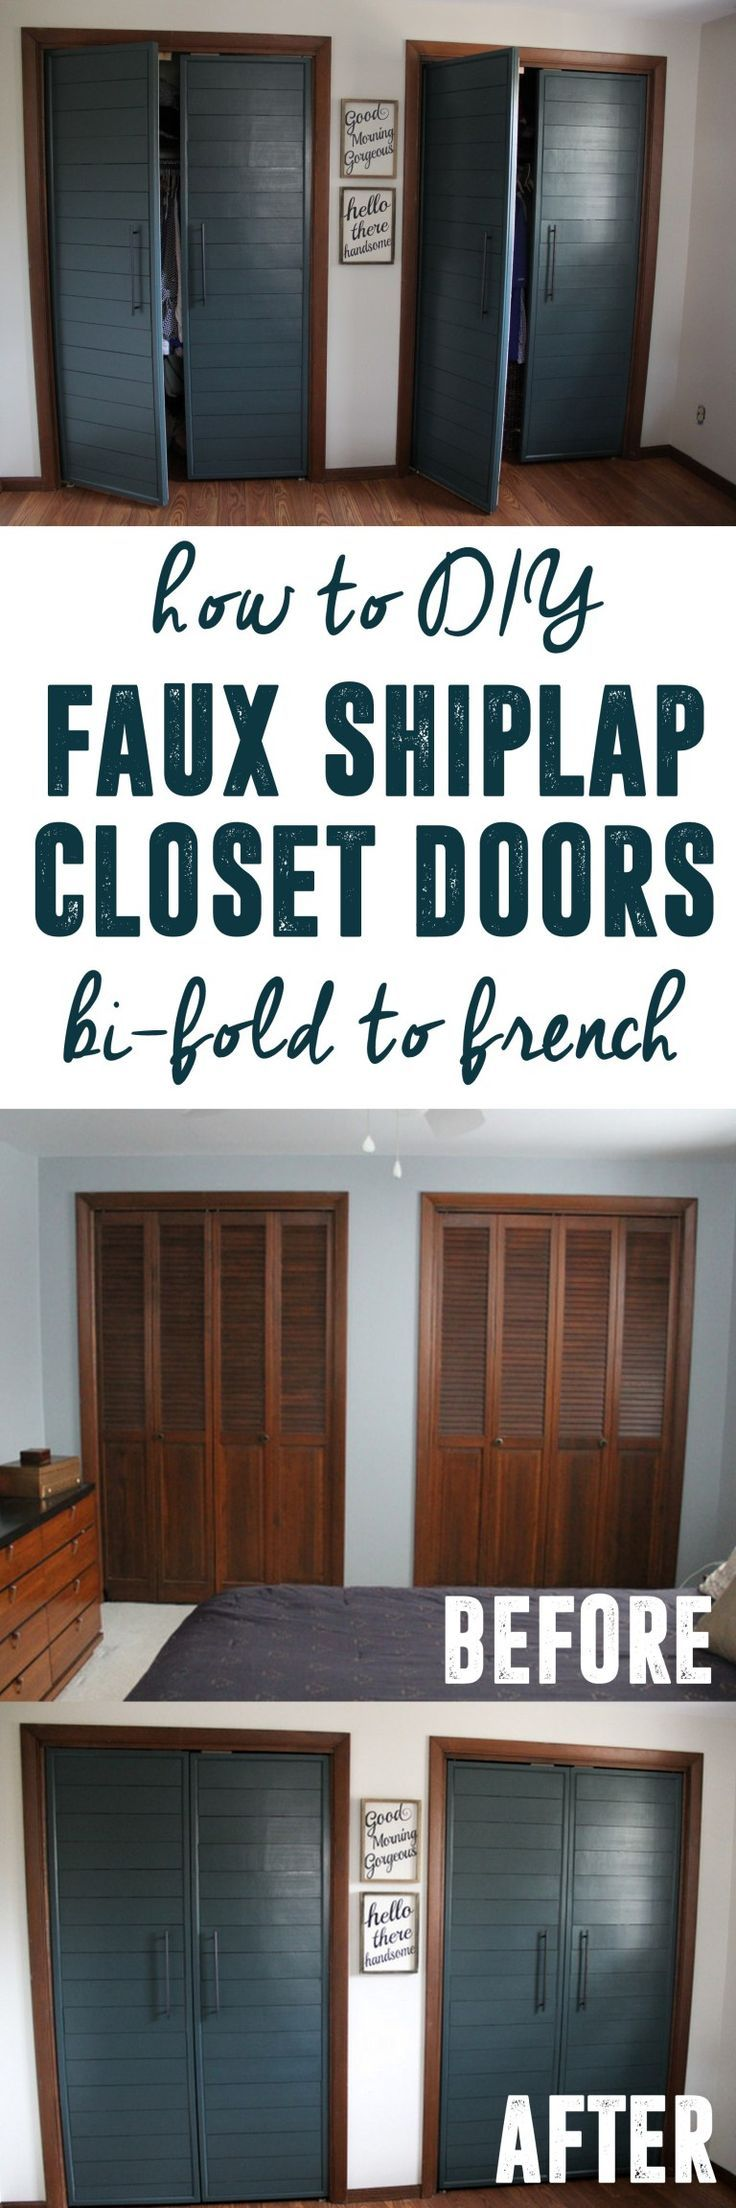 bifold to faux shiplap french closet doors